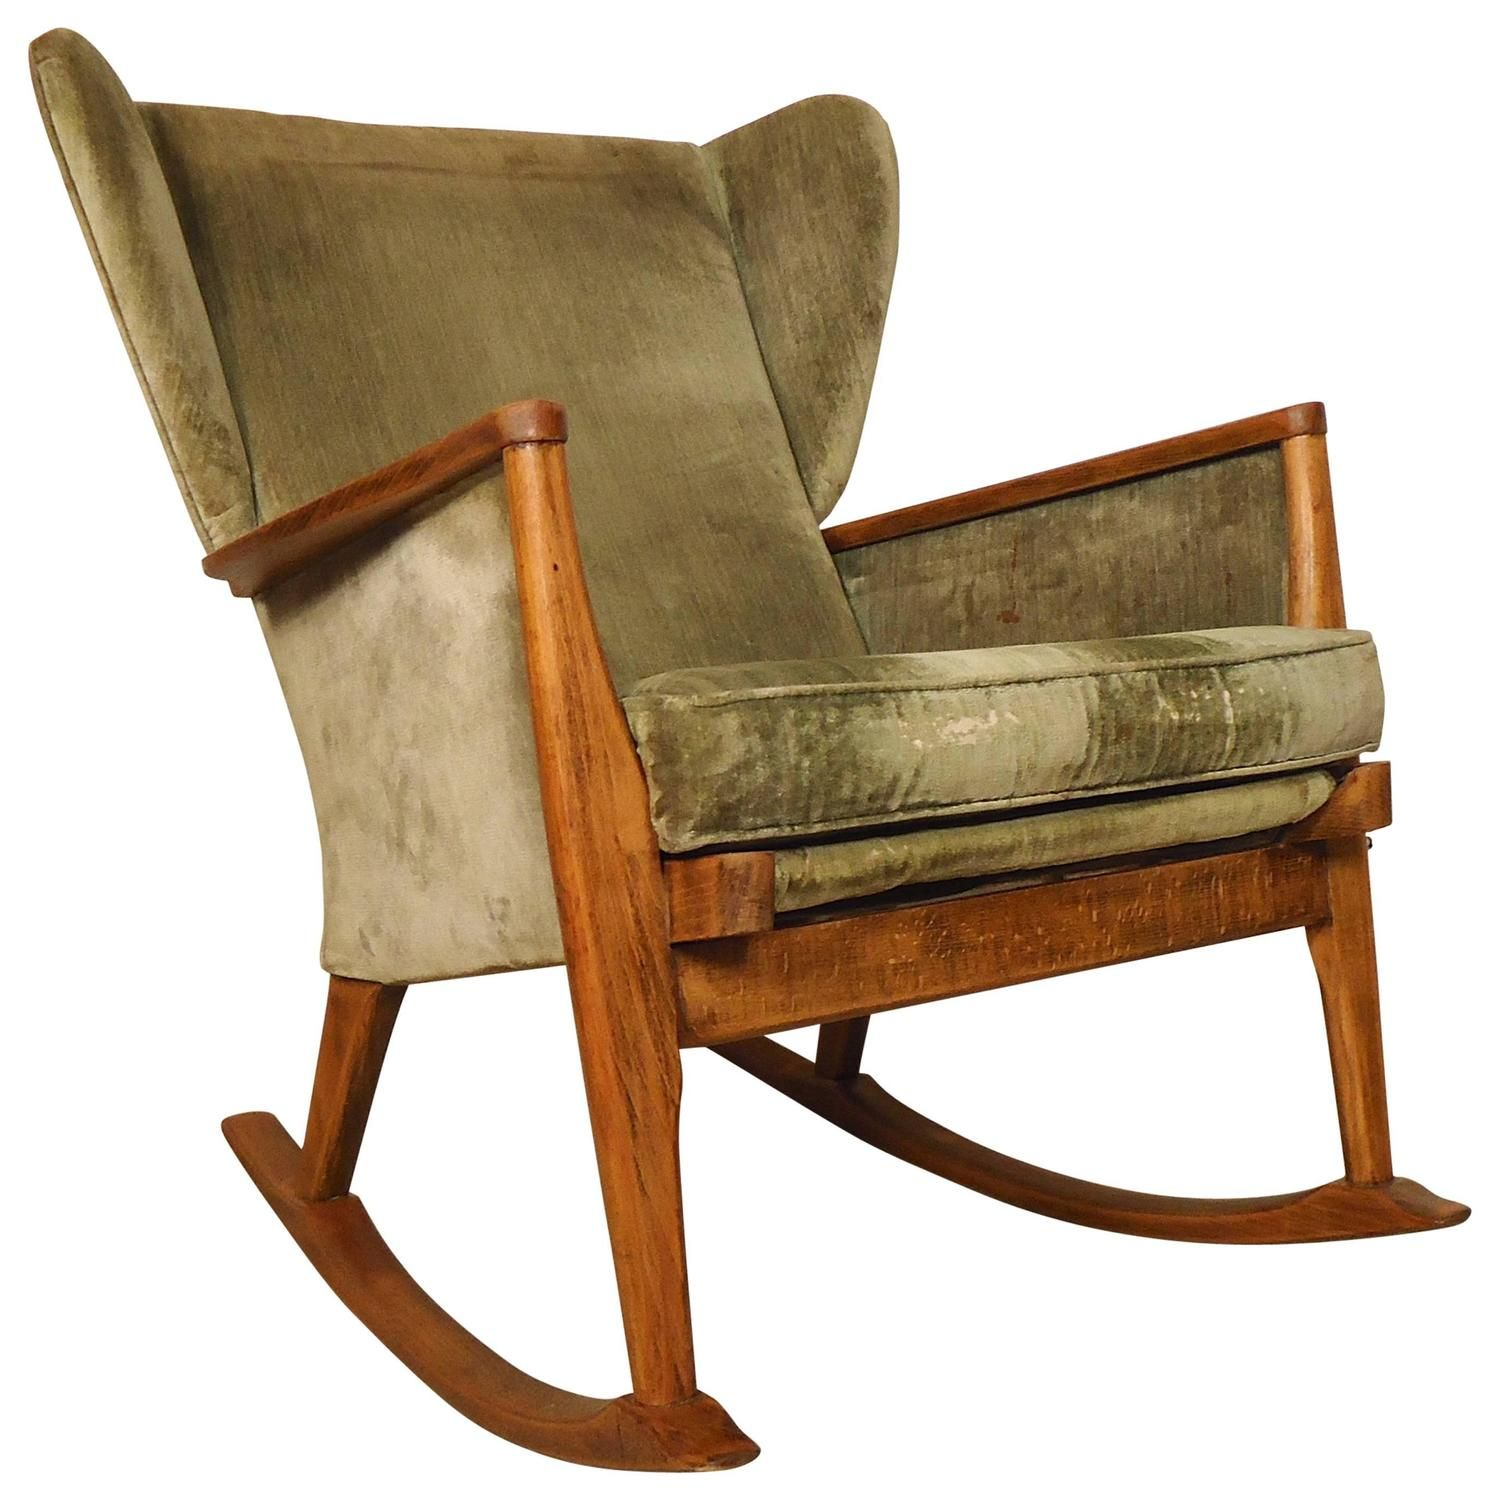 Parker Knoll Wingback Rocking Chair  sc 1 st  Pinterest & Parker Knoll Wingback Rocking Chair | My 1stdibs Favorites ...